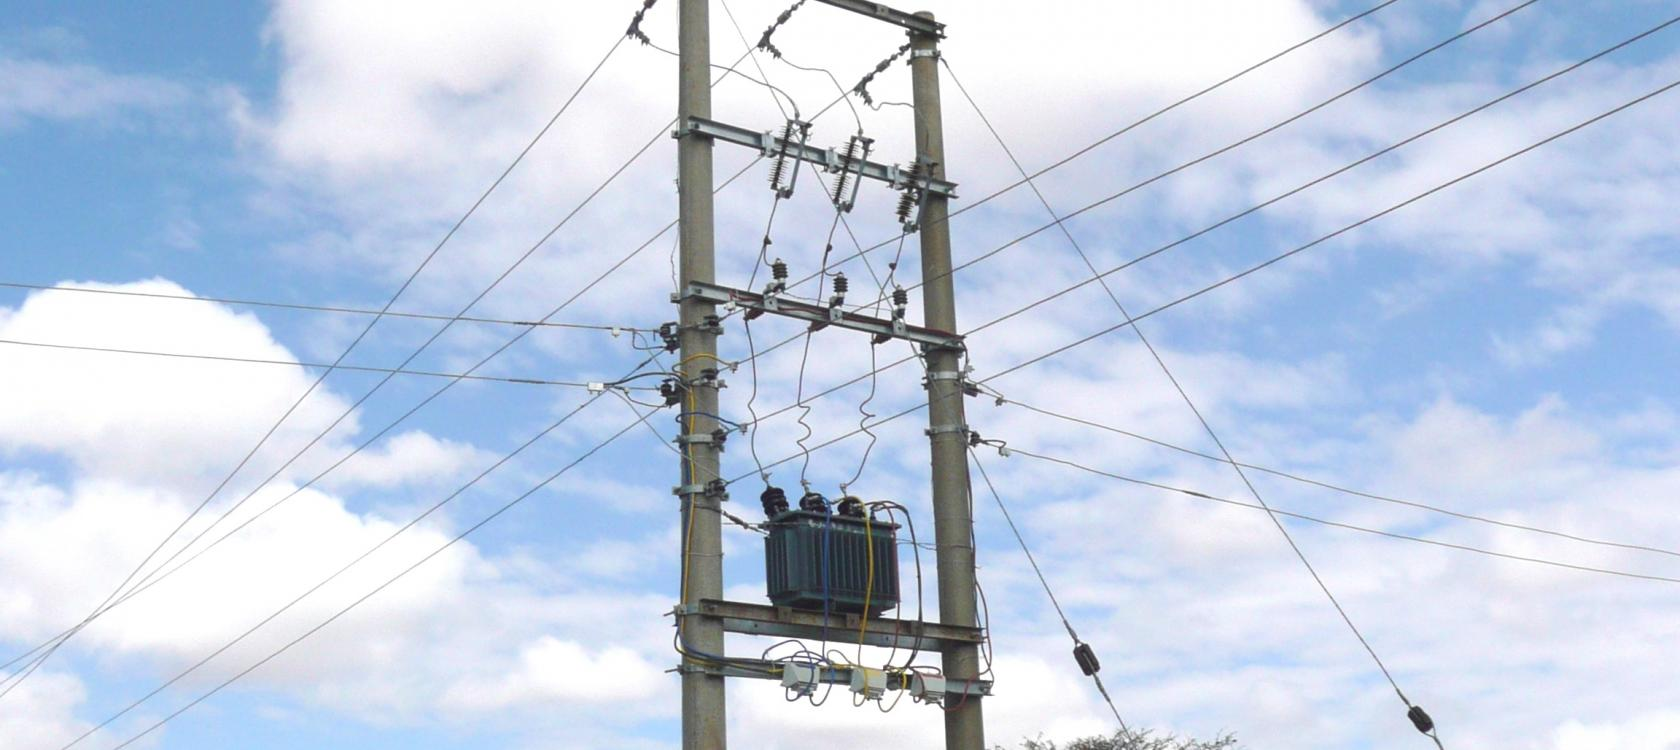 Reliability of electricity distribution - Nairobi, Kisumu